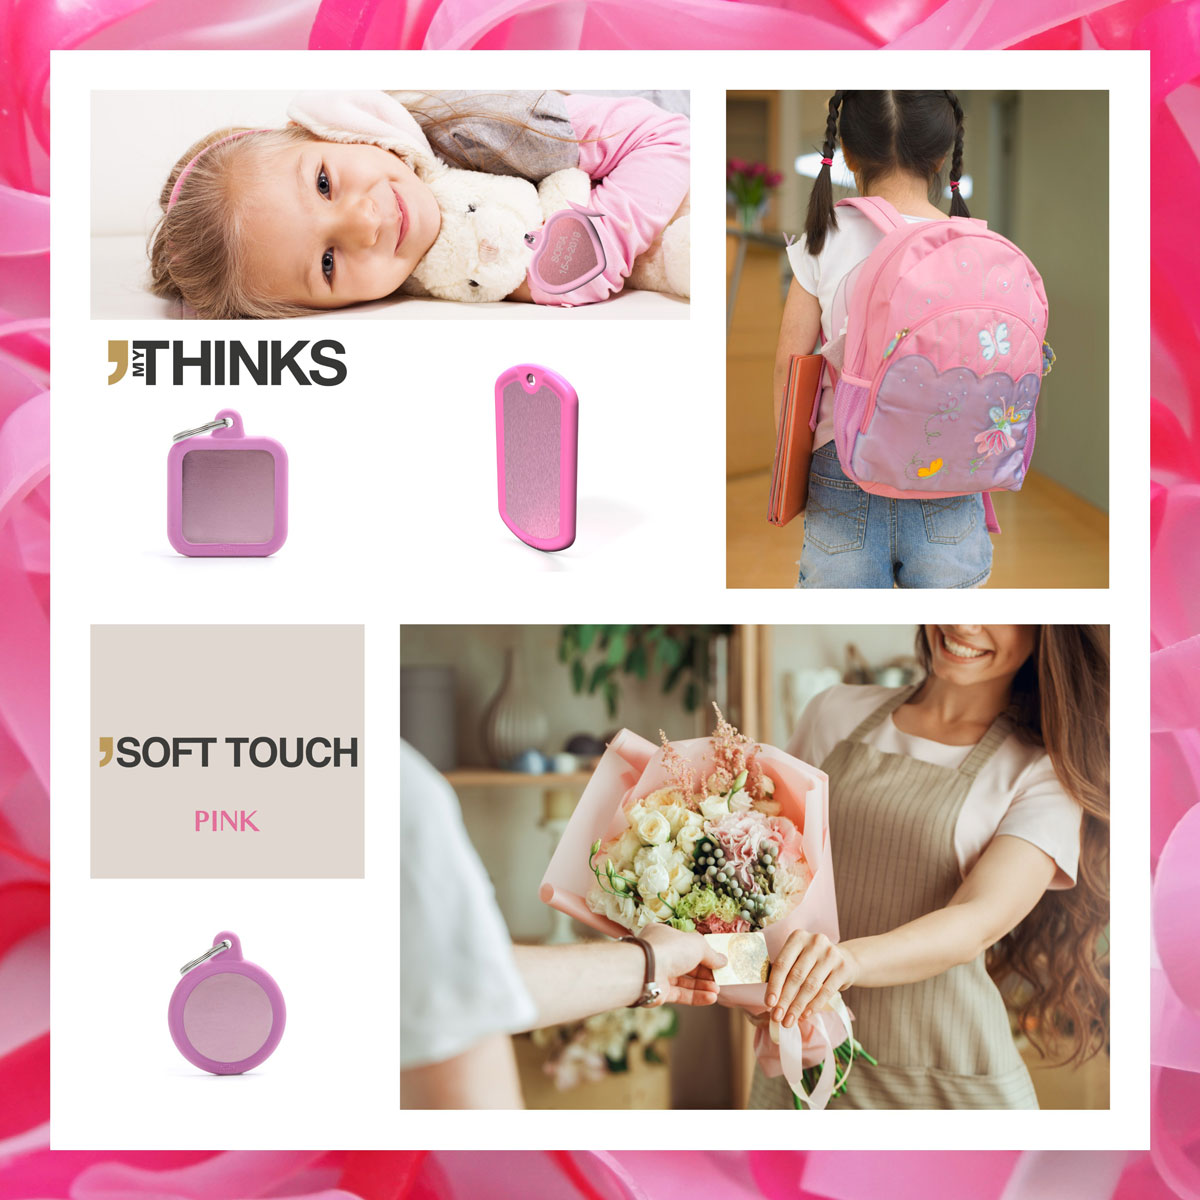 Mood board Soft touch collection gifts with pink rubber braid on pink anodized aluminum charm for the luggage and personal gift market